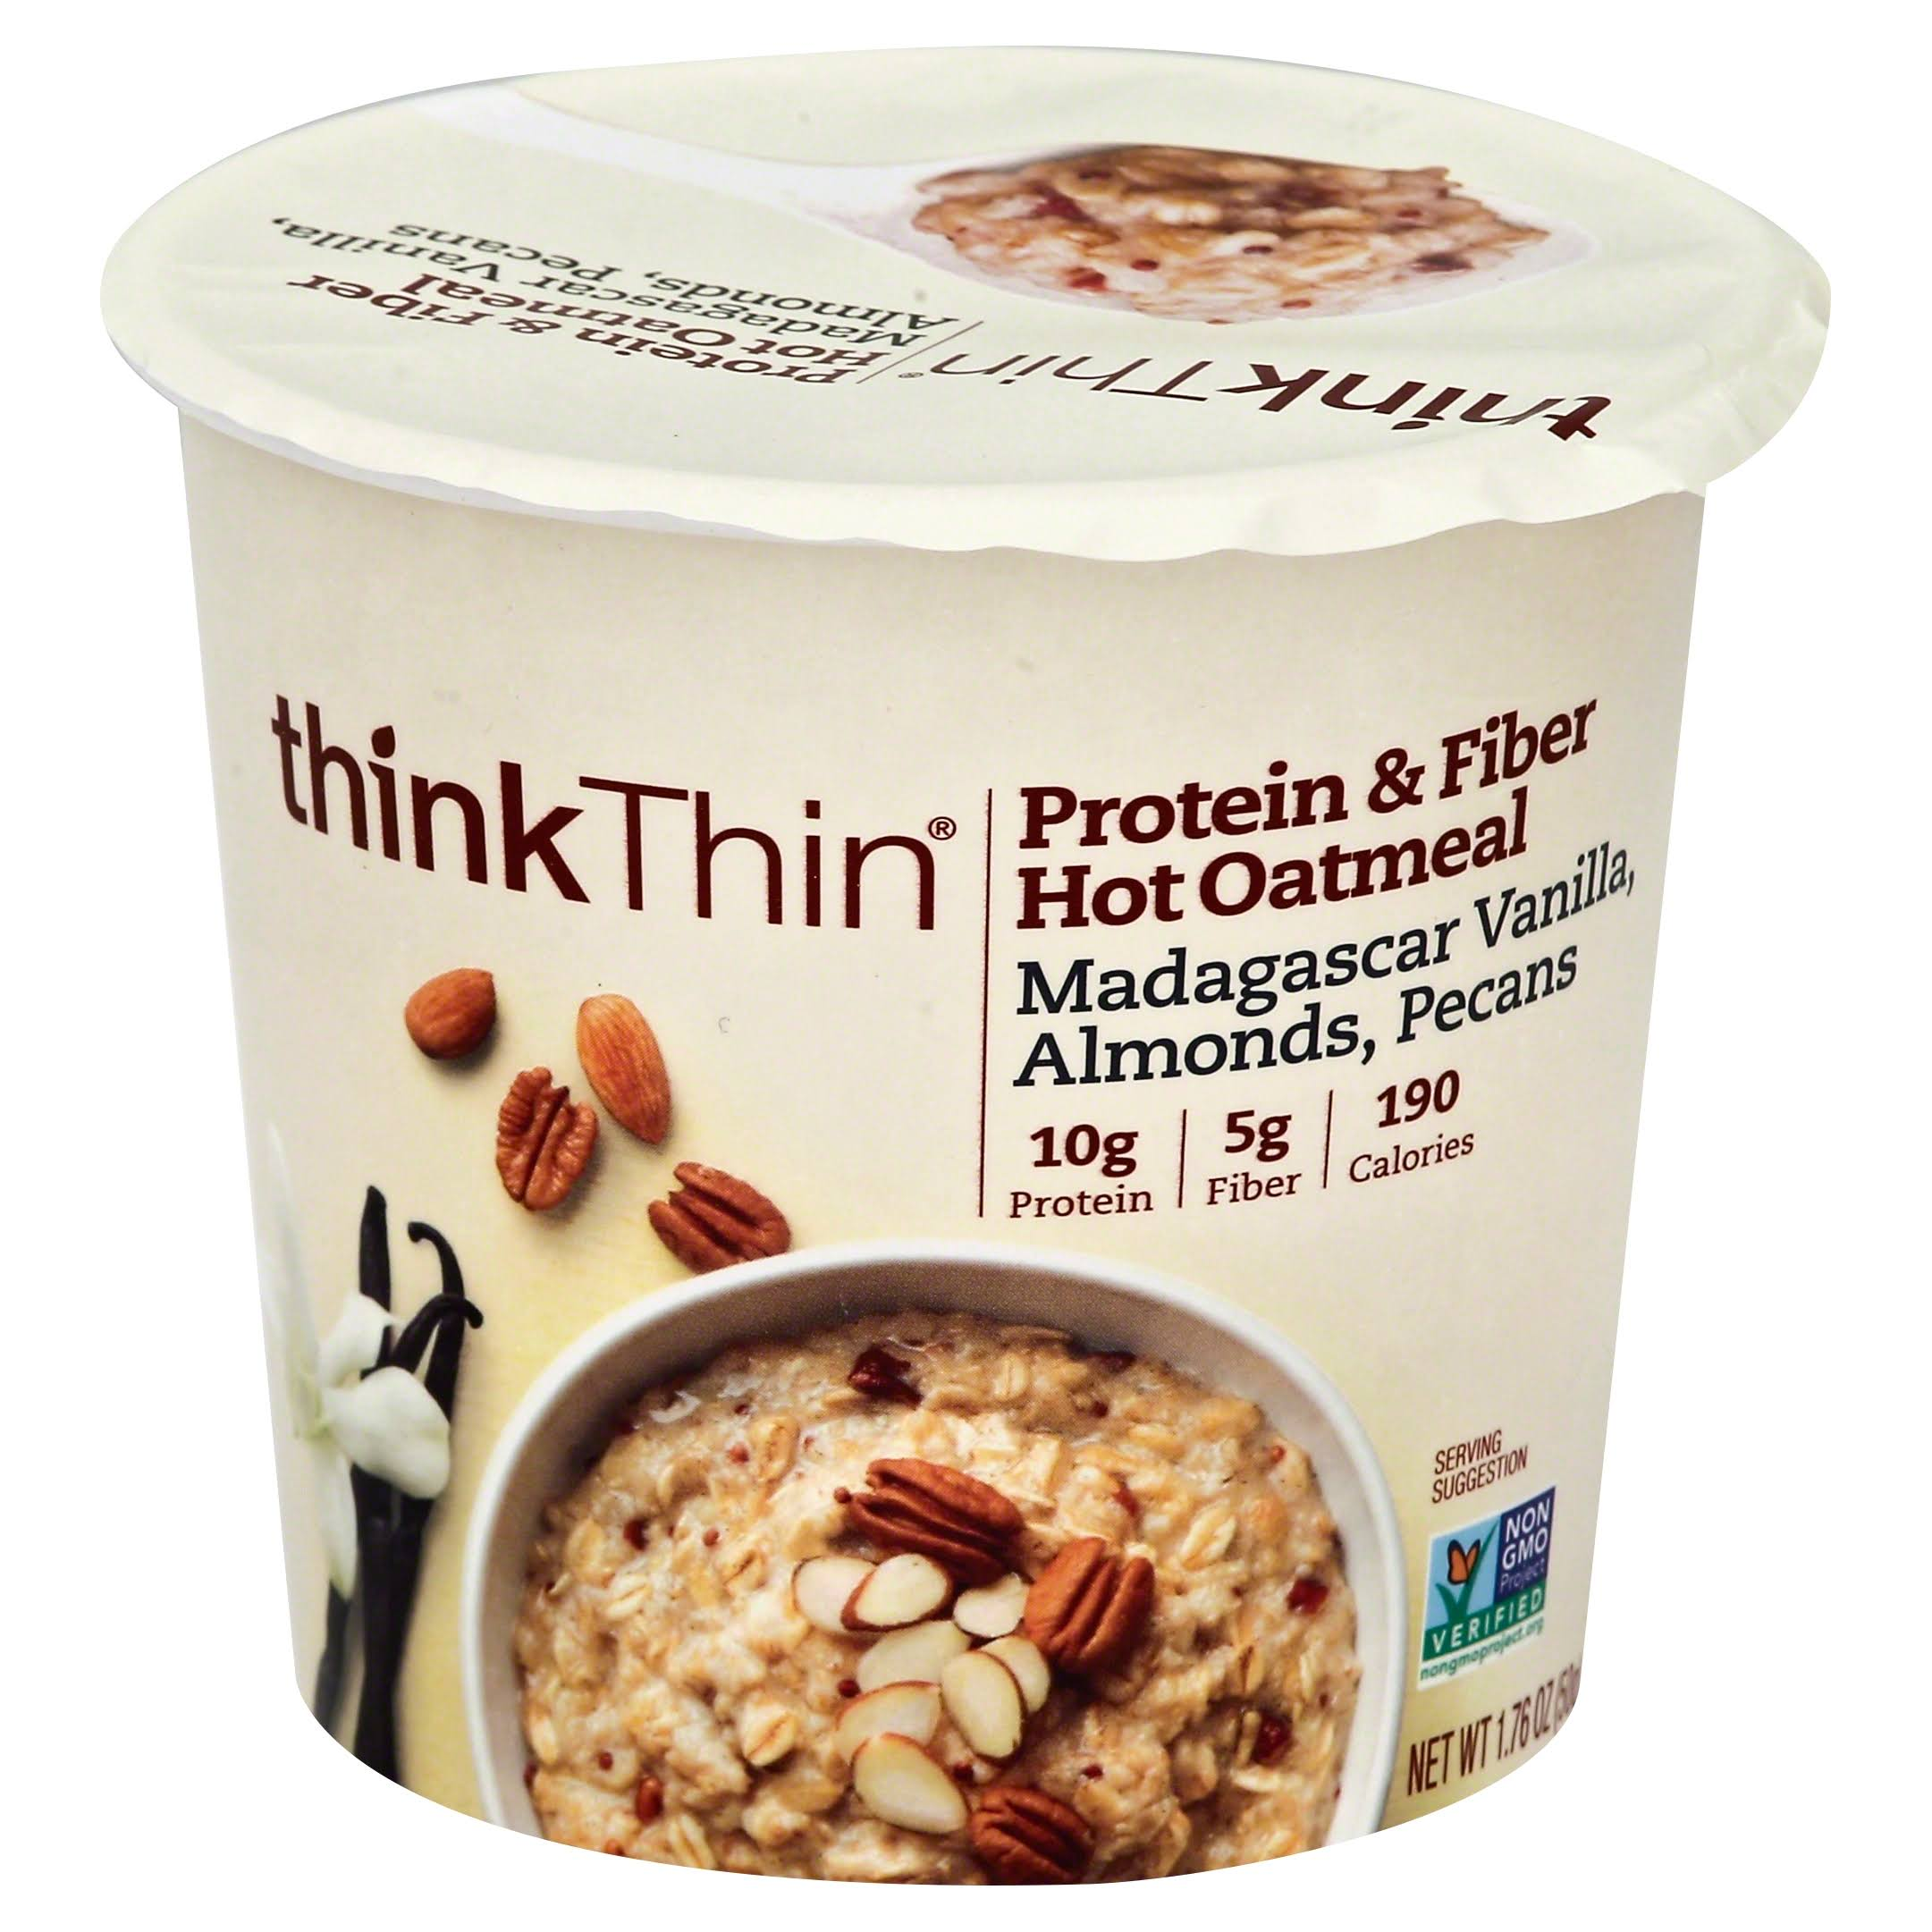 Thinkthin Protein & Fiber Hot Oatmeal - Madagascar Vanilla, Almonds & Pecan, 50g